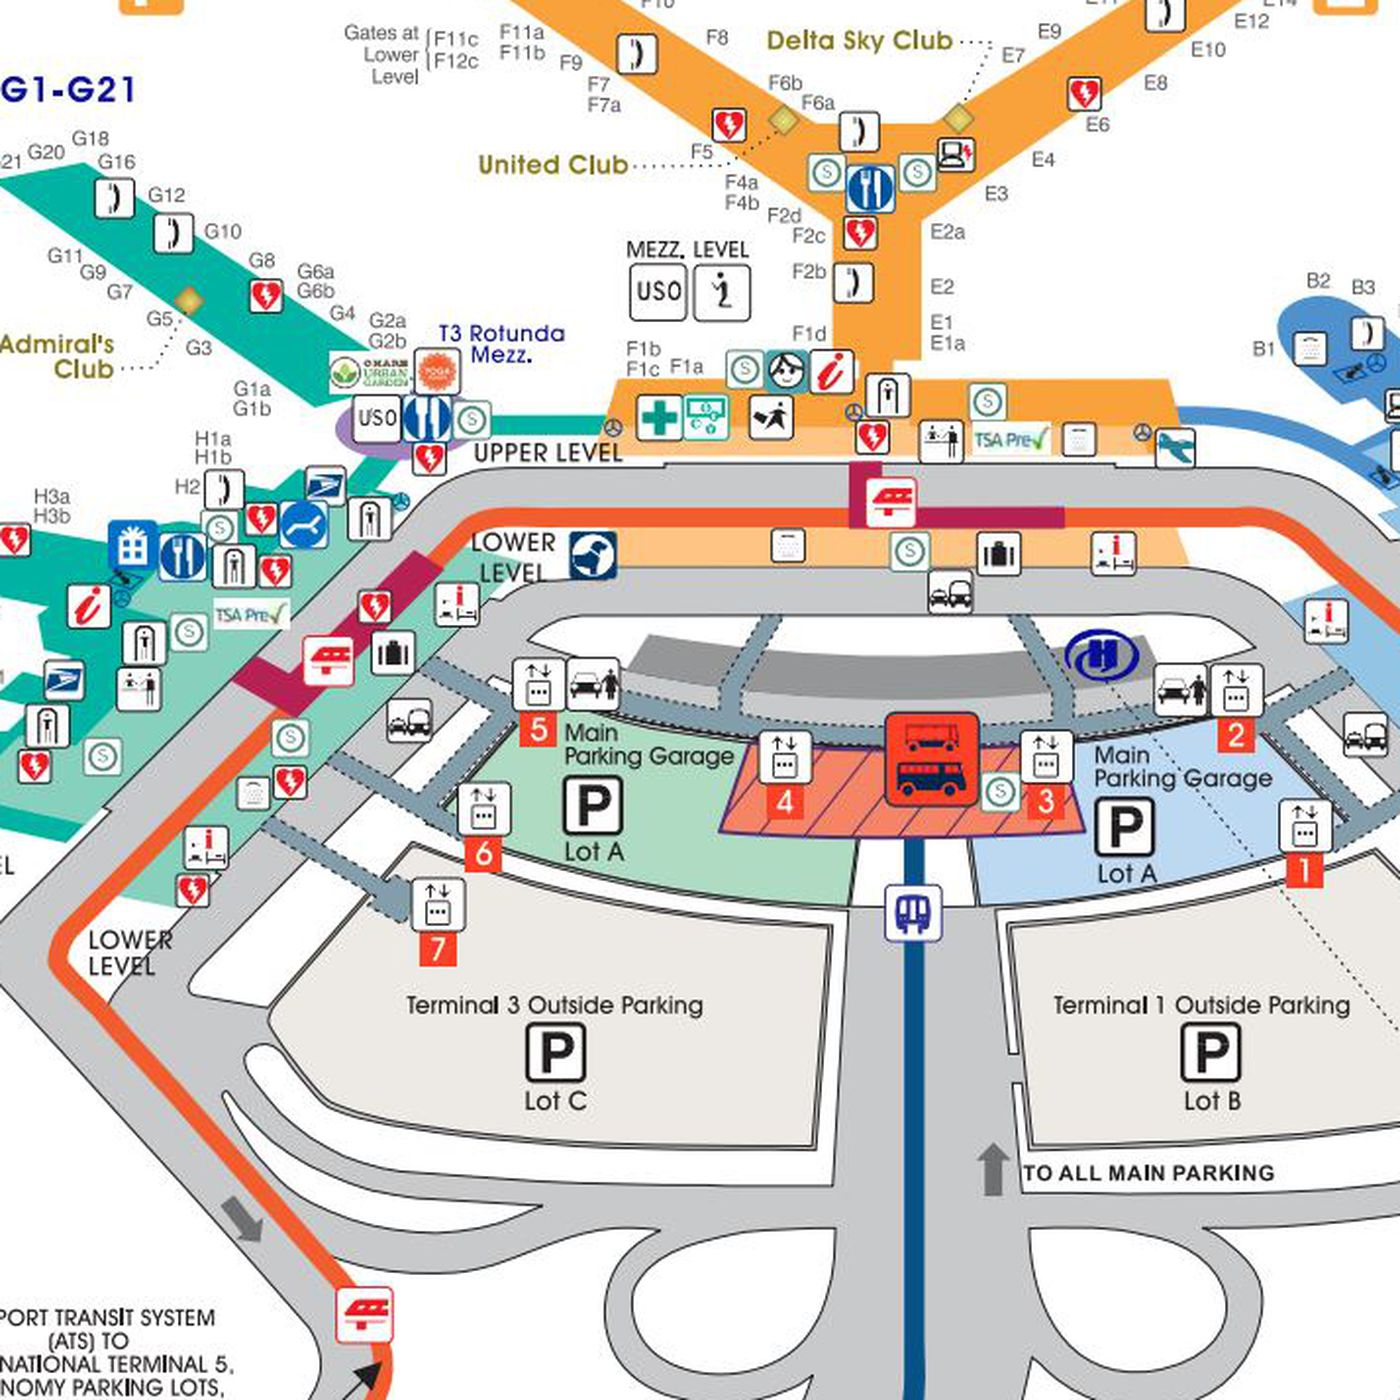 Where to Eat at O'Hare International Airport (ORD) - Eater ... on o'hare gate map, chicago south lawndale map, o'hare area map, o'hare bus shuttle center map, o'hare restaurant map, o'hare arrivals map, o'hare airport map, elgin o'hare map, o'hare parking map, o'hare modernization map, chicago regional map with locations, chicago airport map, hyatt o'hare map, o'hare cargo map, o'hare concourse map, o'hare field map, united airlines o'hare map, o'hare blue line map, official o'hare map,